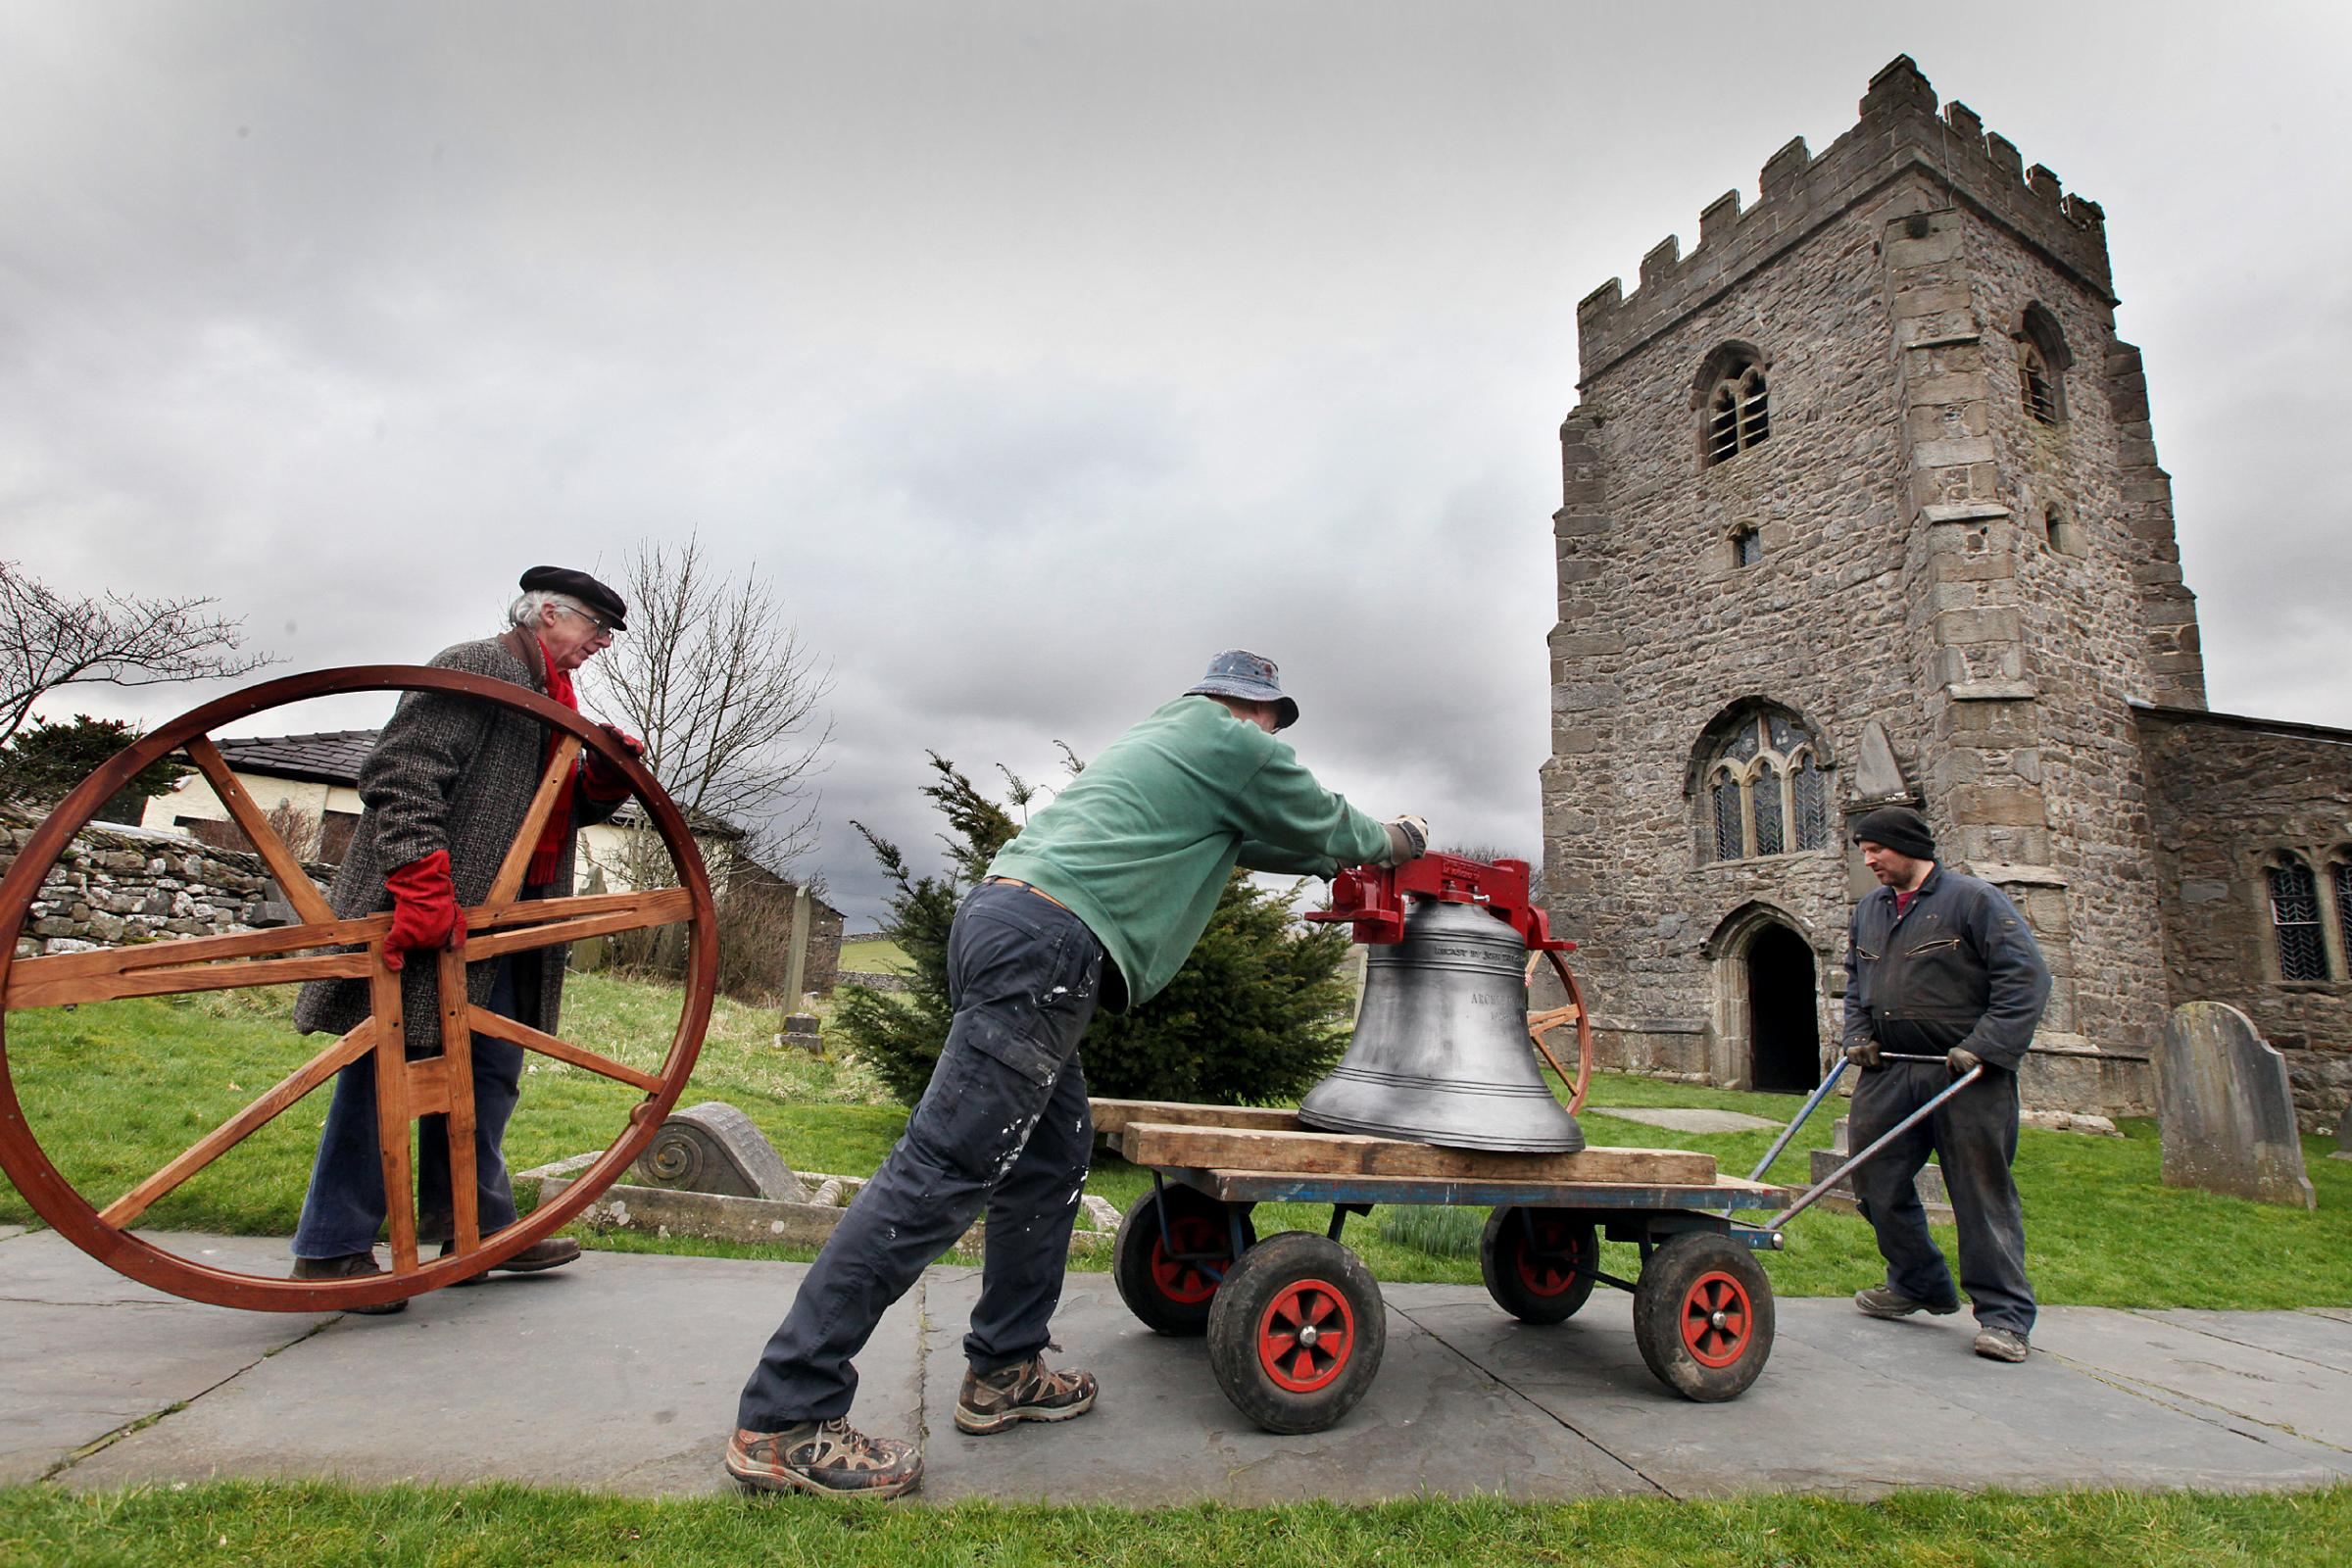 NEW ARRIVALS: parishioners at St Oswald's Church take delivery of the two new bells which will add to the four bells already in place